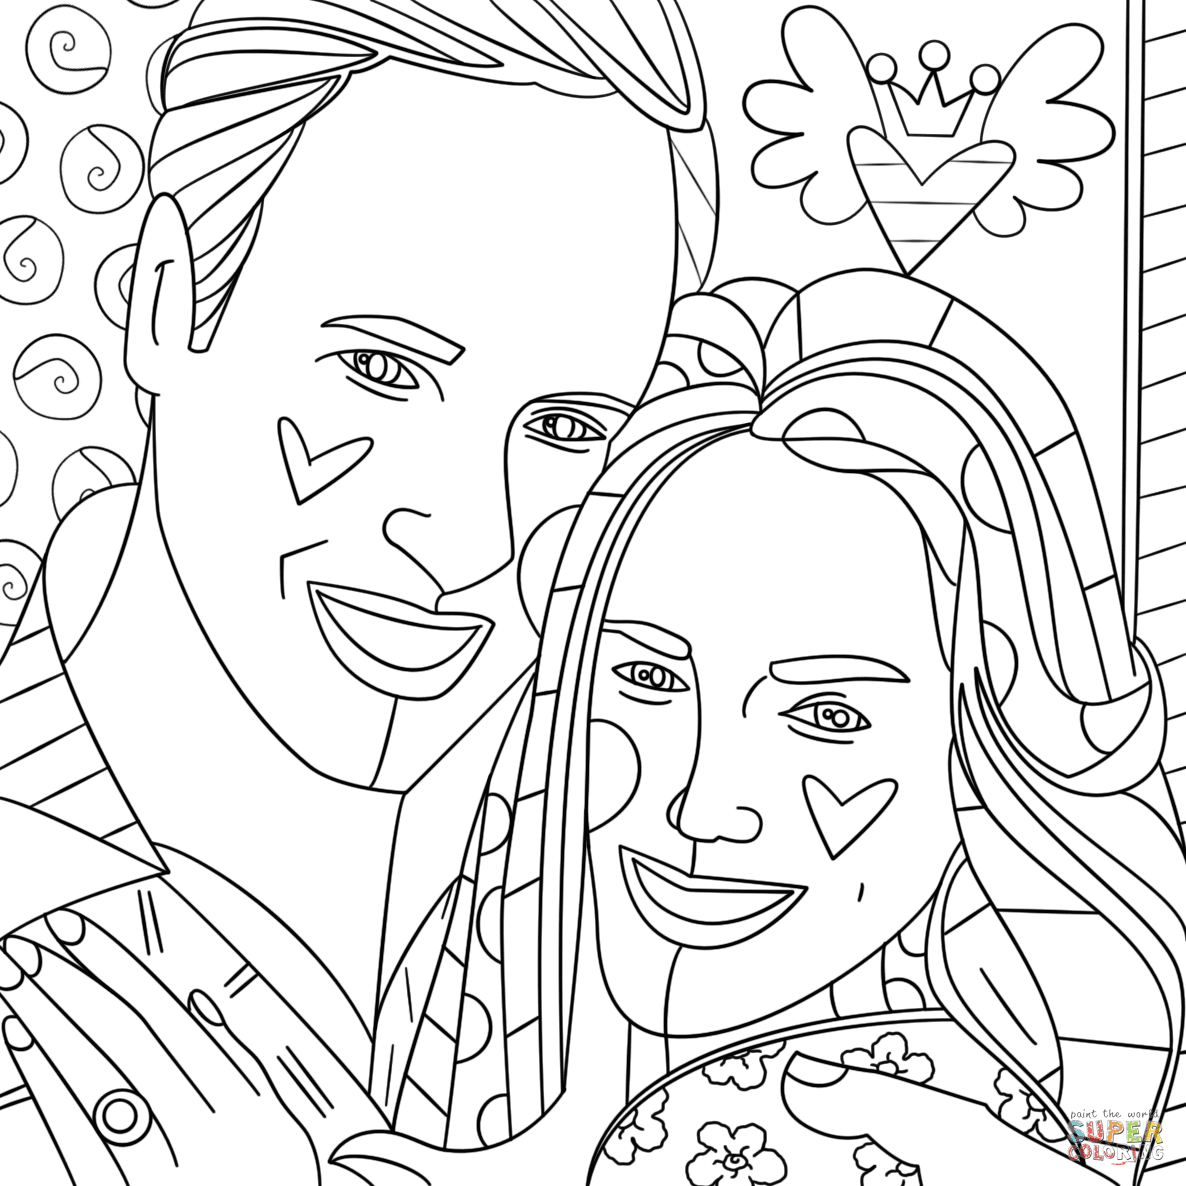 dilma elogia coloring pages - photo#19